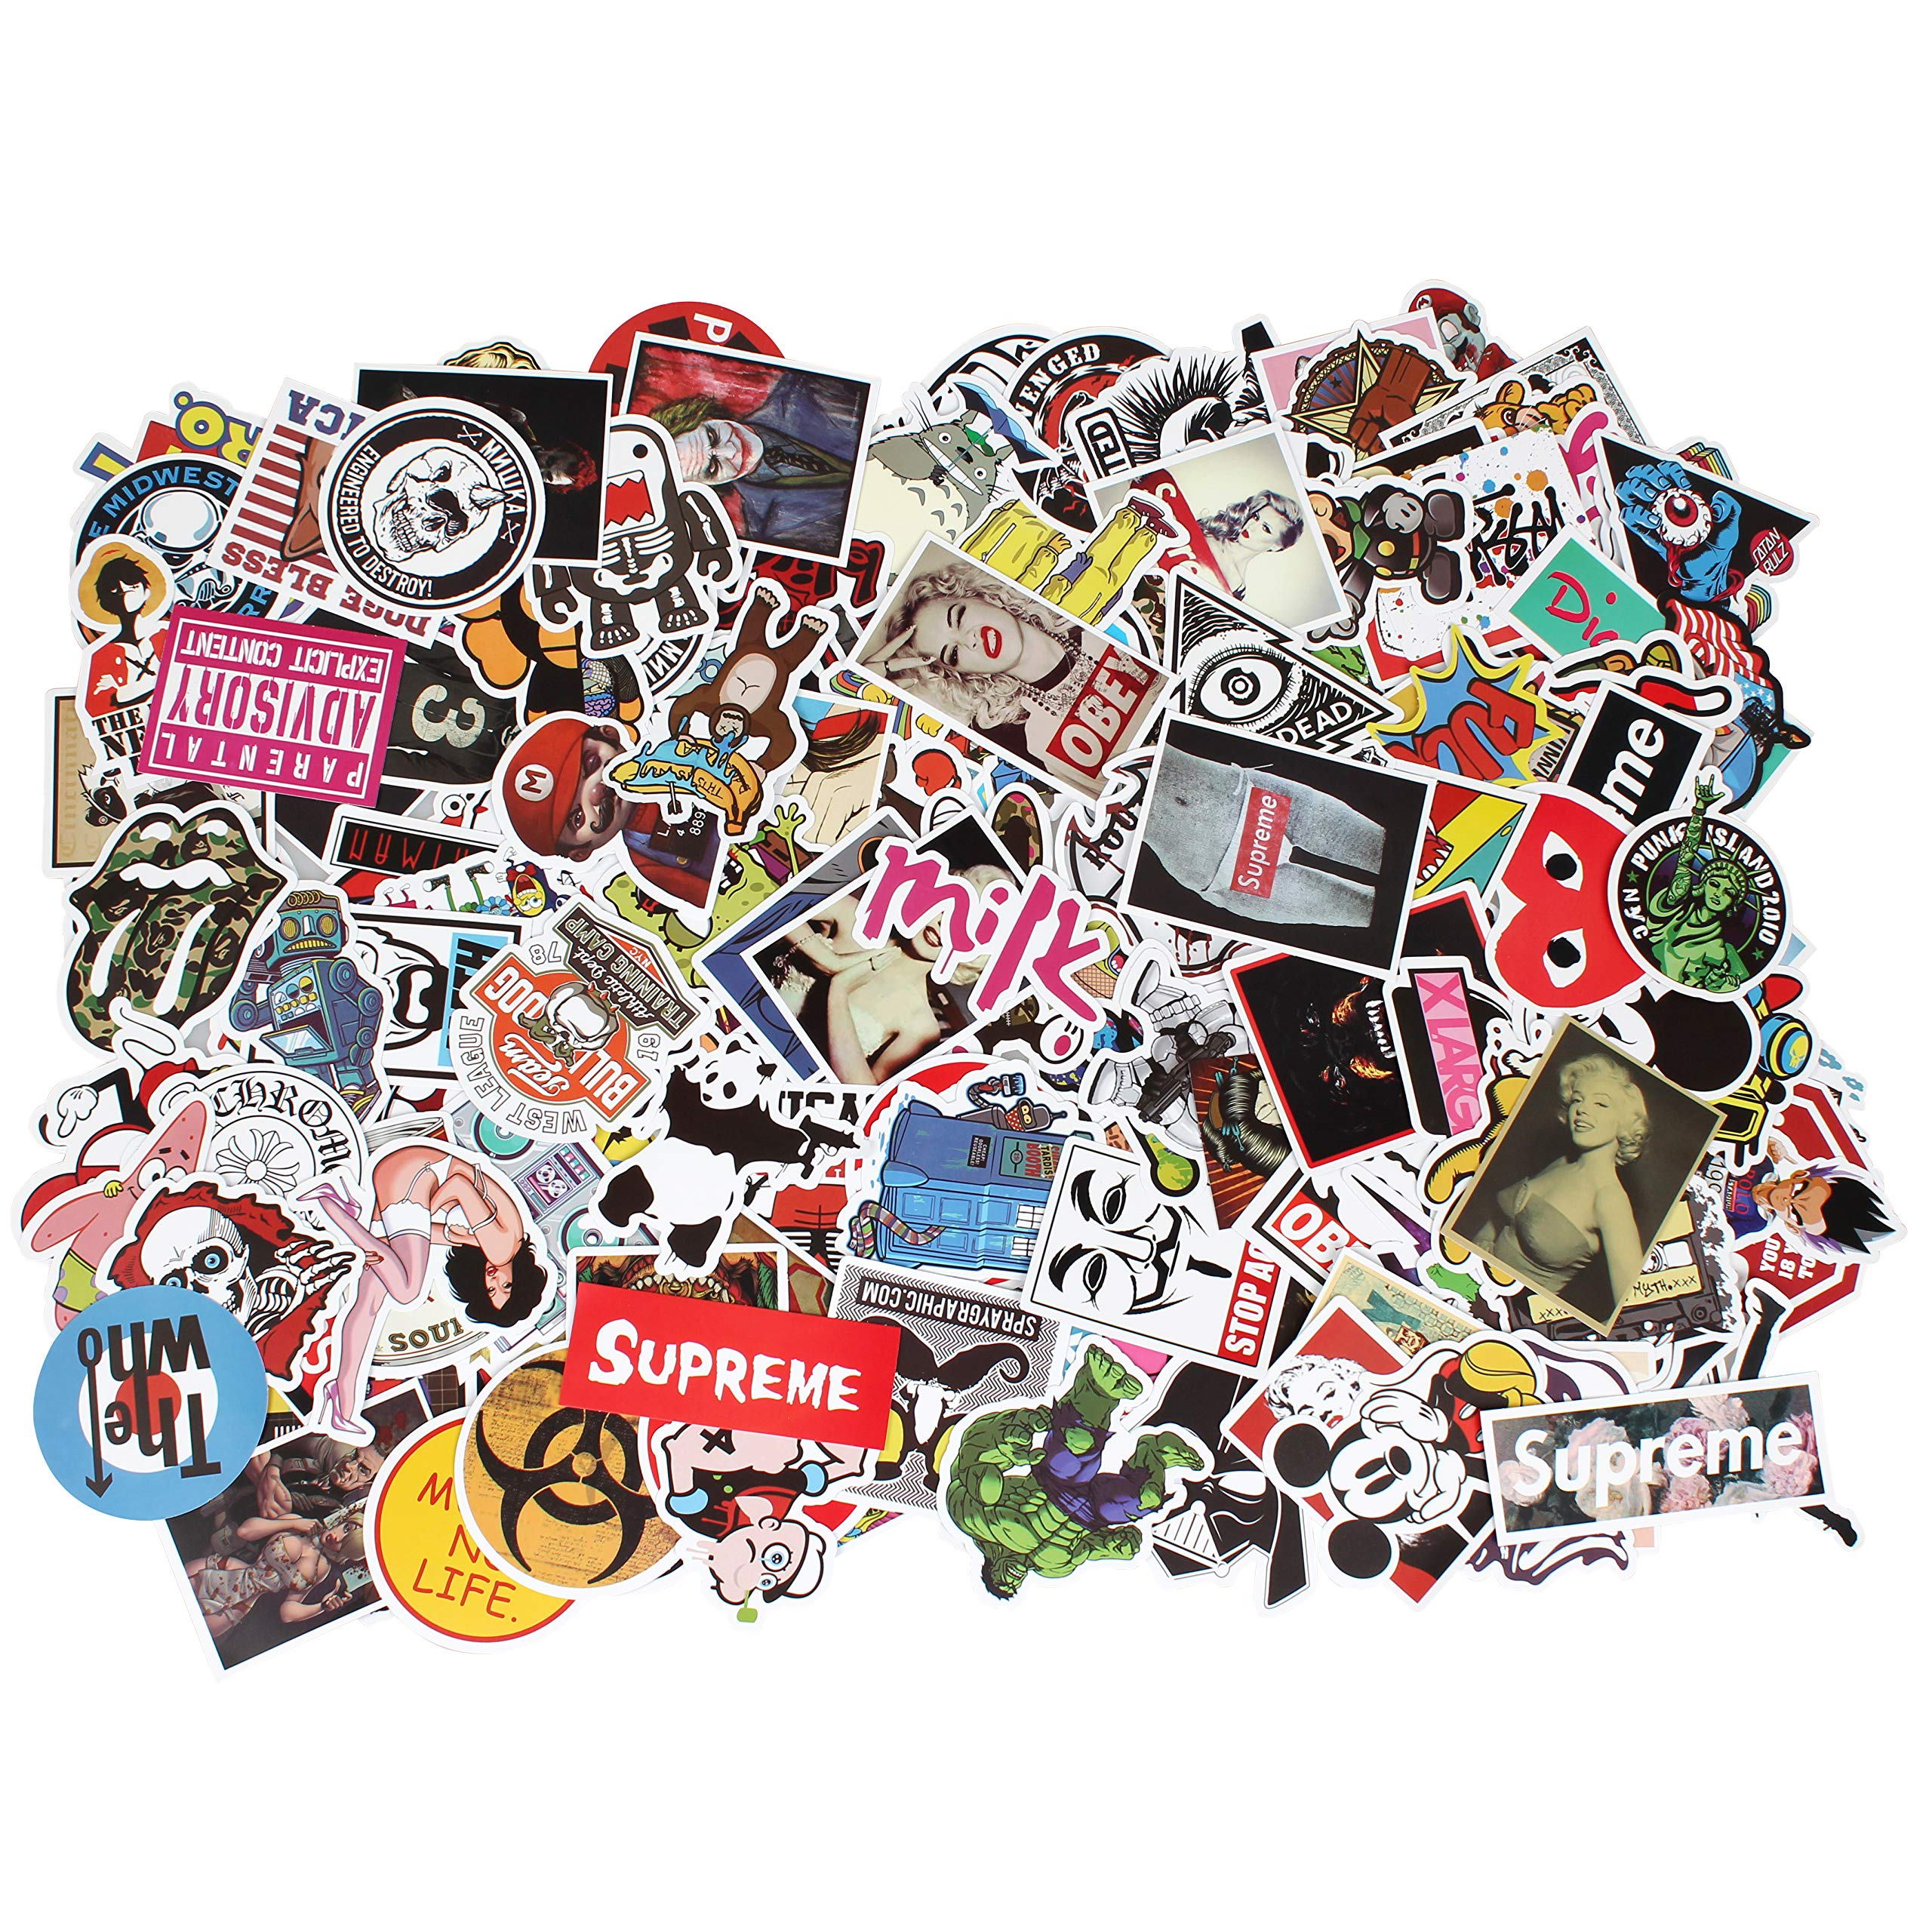 Sticker Decals - 200 Pcs Laptop Vinyl Stickers car Sticker Snowboard Motorcycle Bicycle Phone Mac Computer DIY Keyboard Car Window Bumper Wall Luggage Decal Graffiti Patches